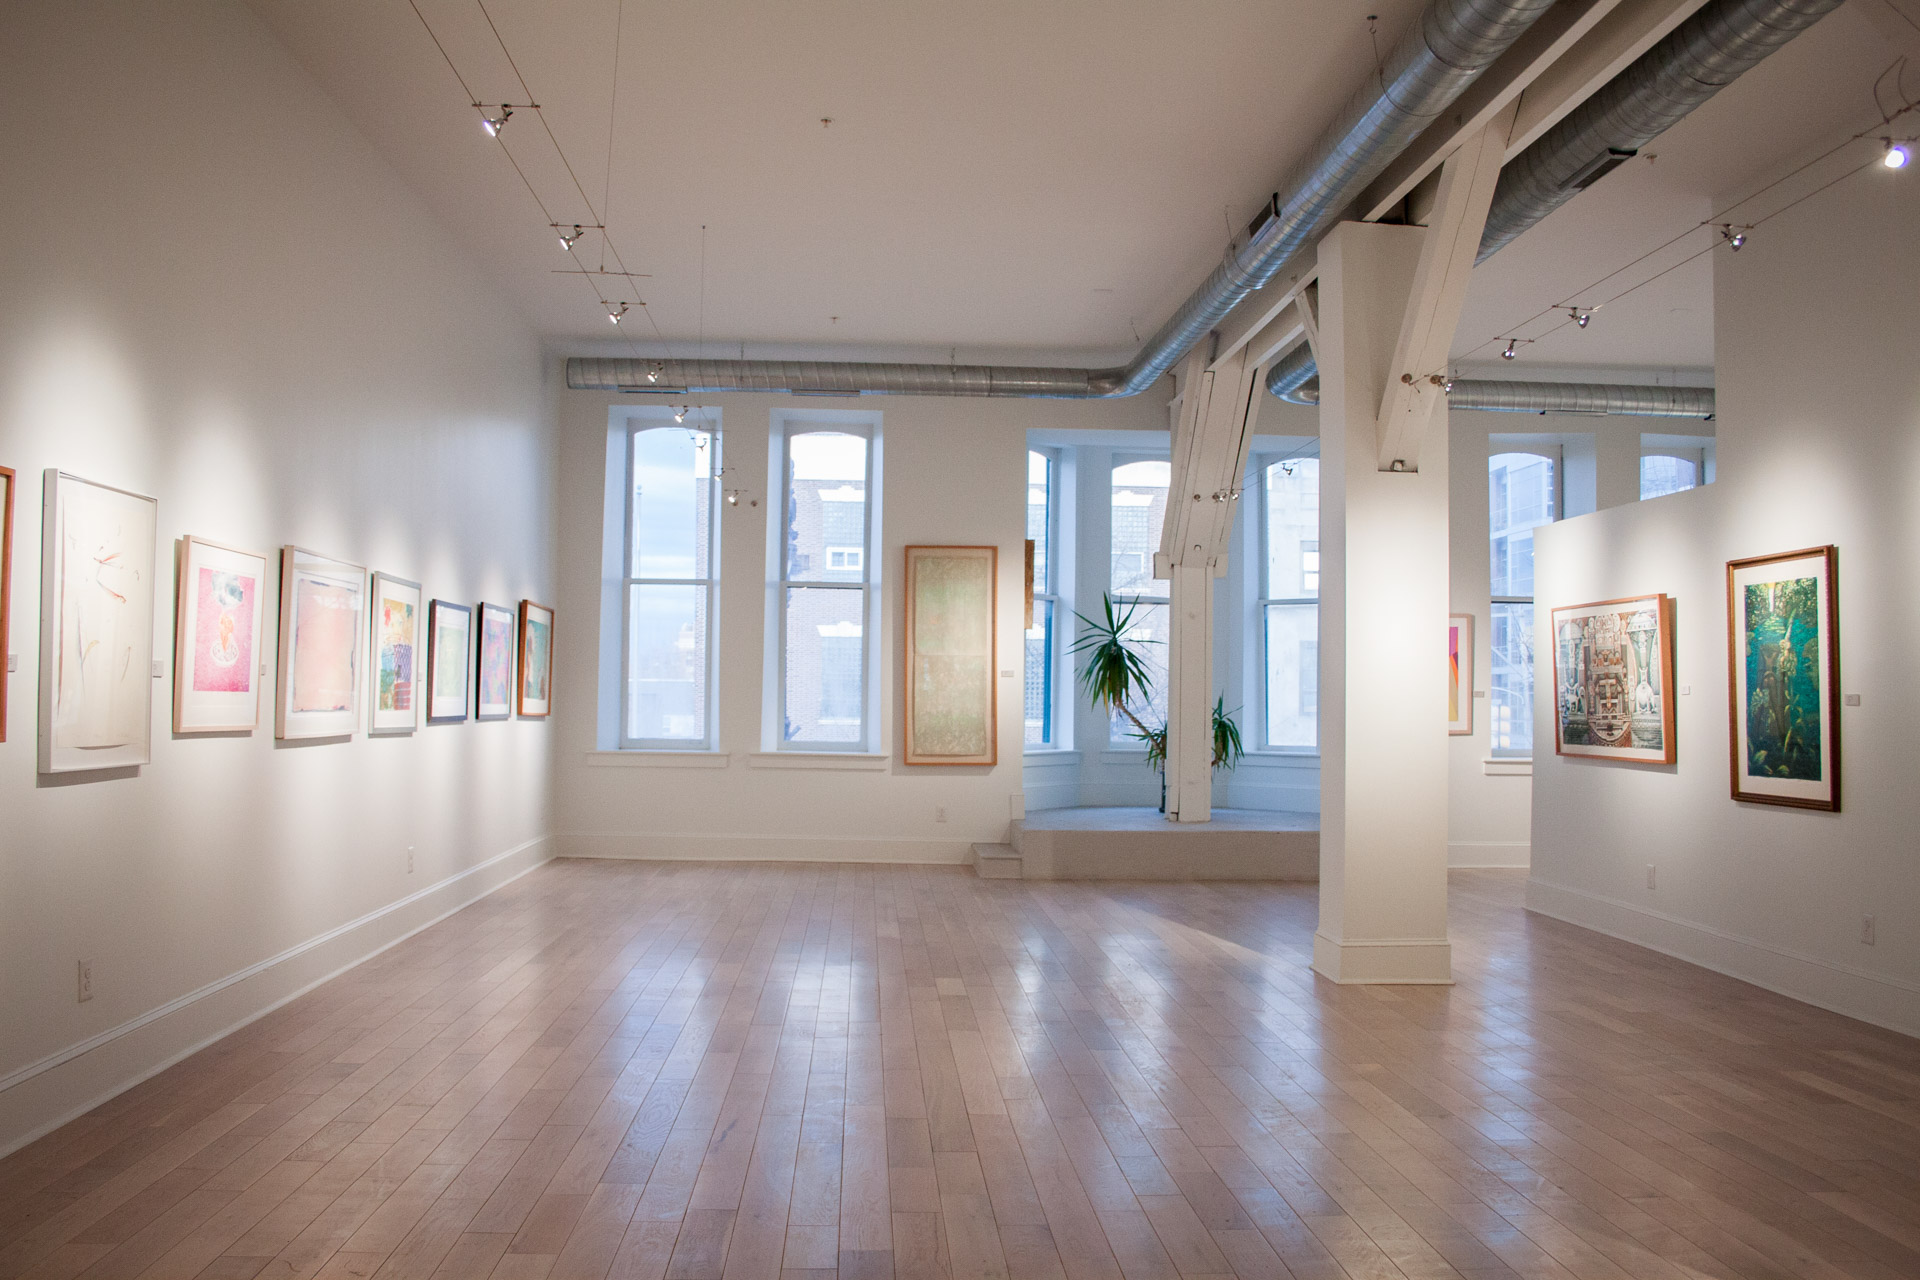 The Printed Image Gallery